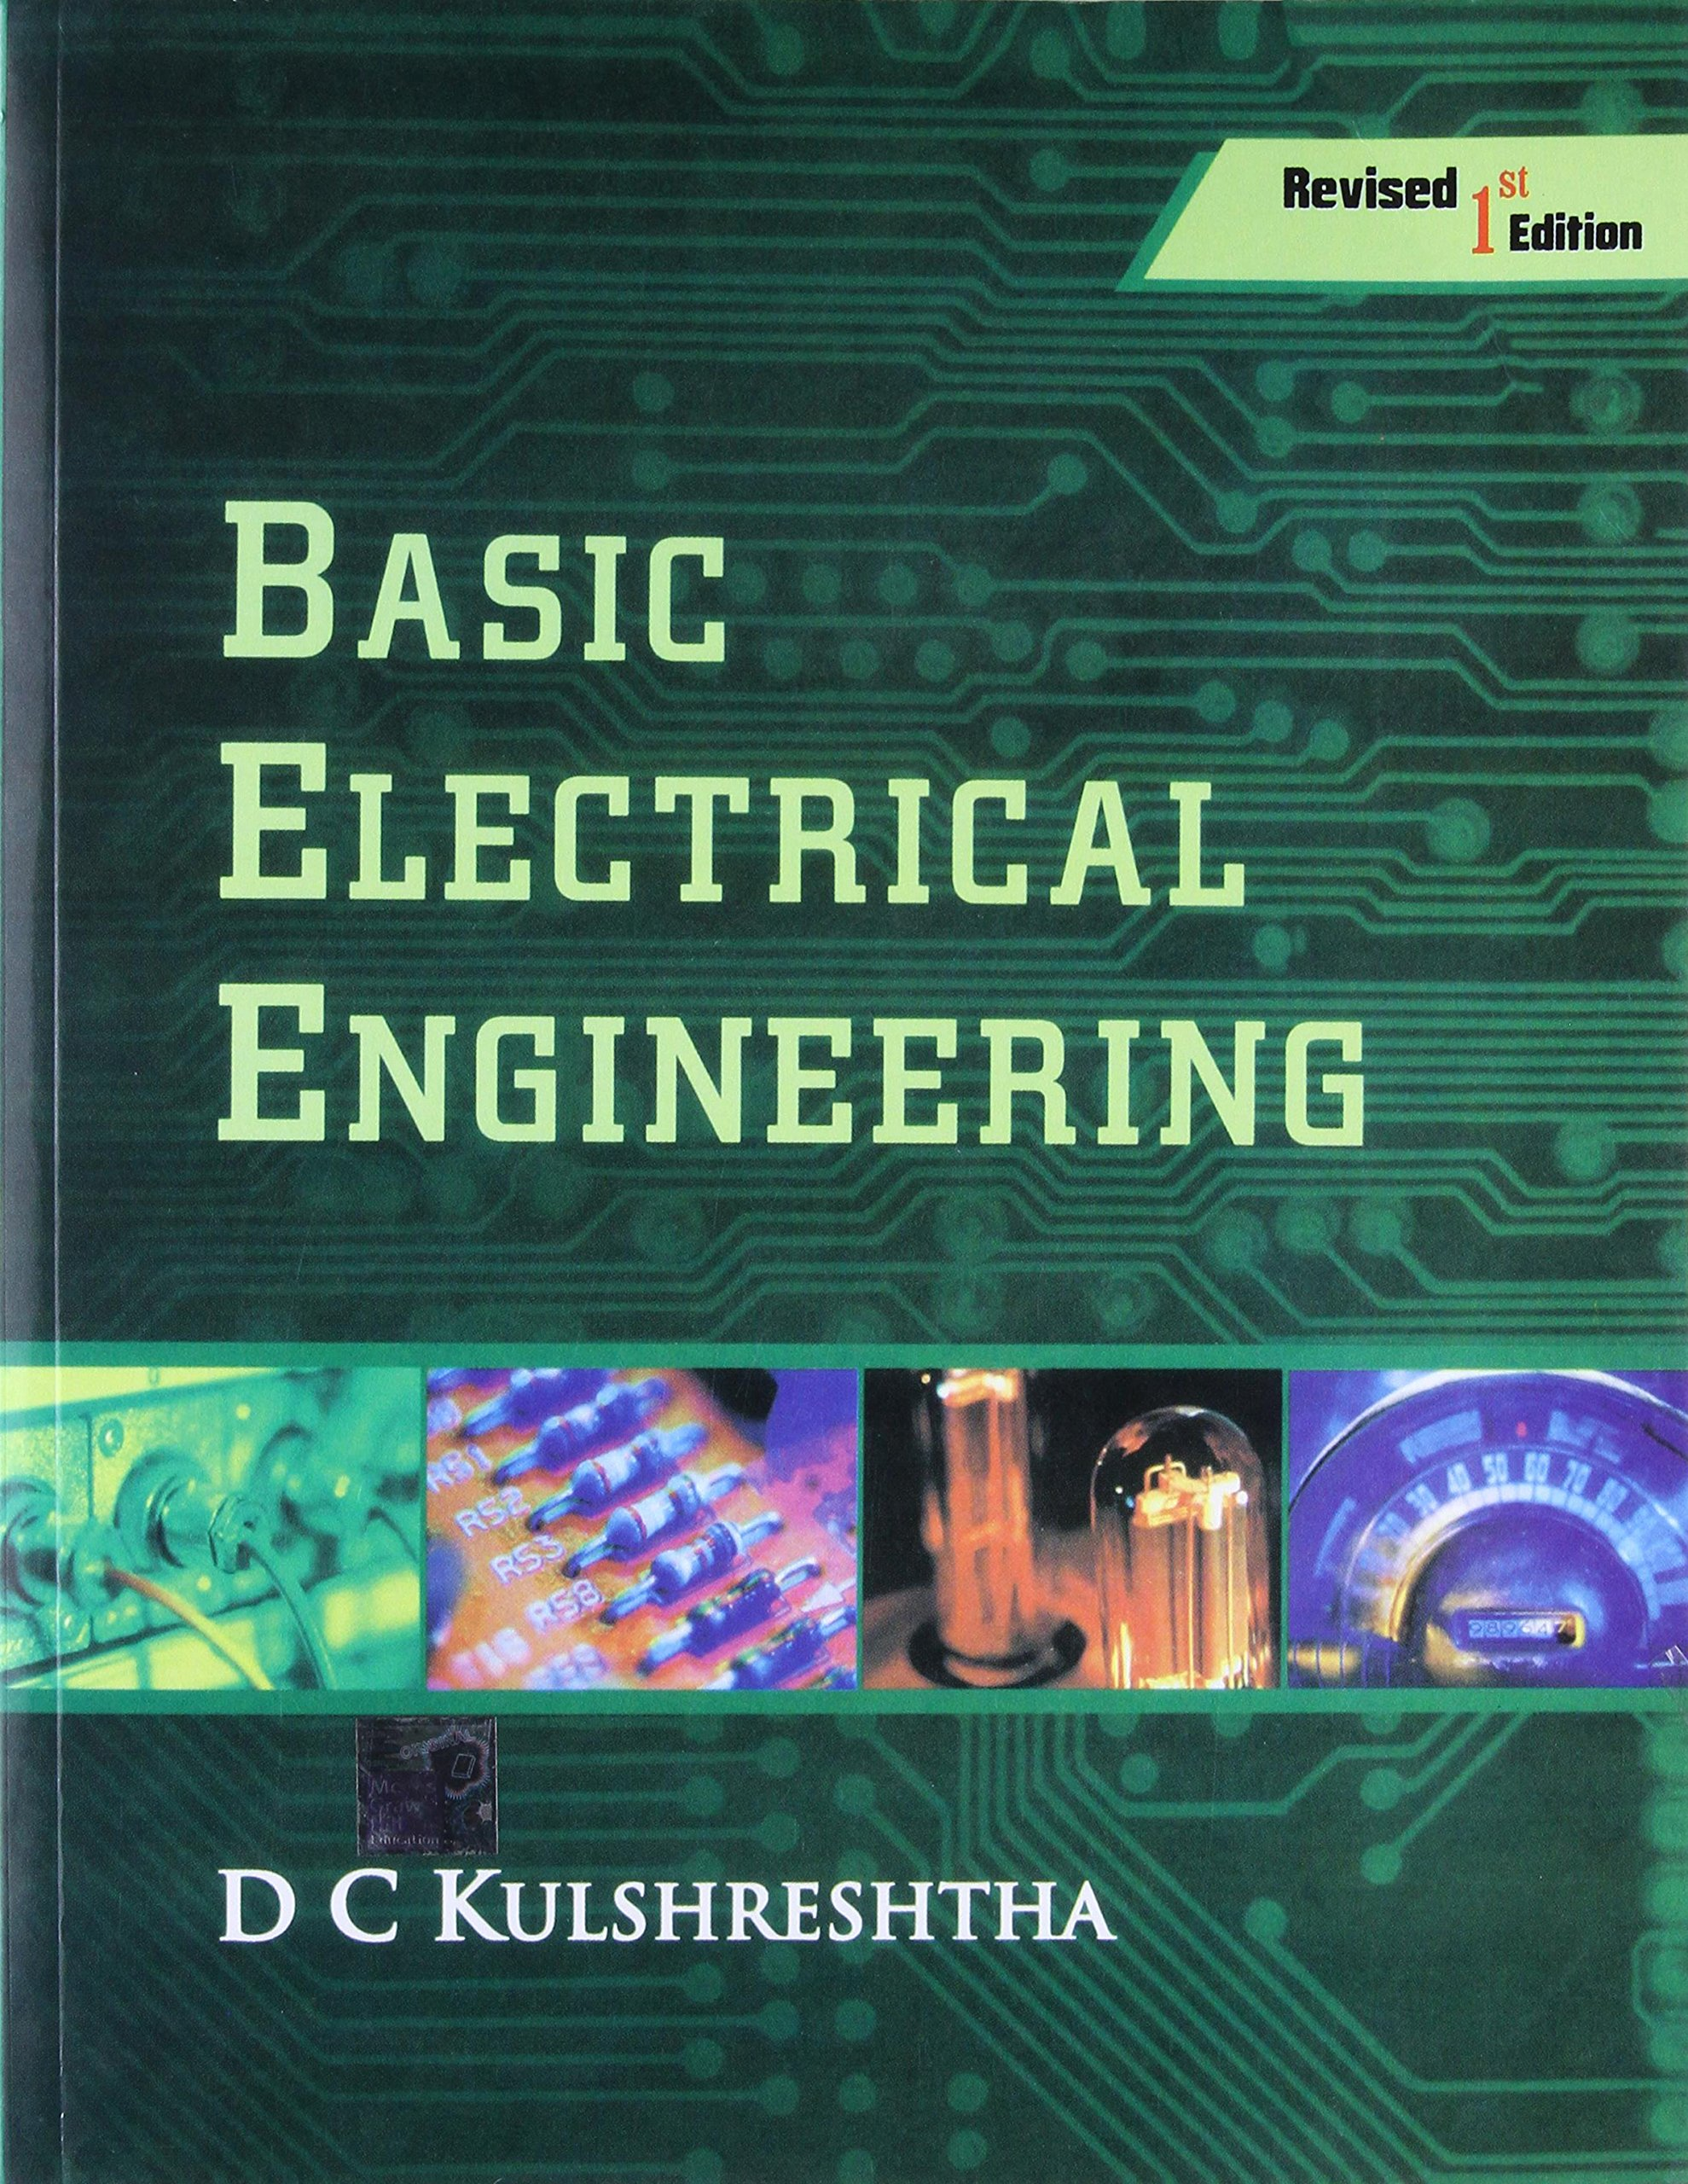 Buy Basic Electrical Engineering Revised First Edition Book Online Schemes For Electric Guitars At Low Prices In India Reviews